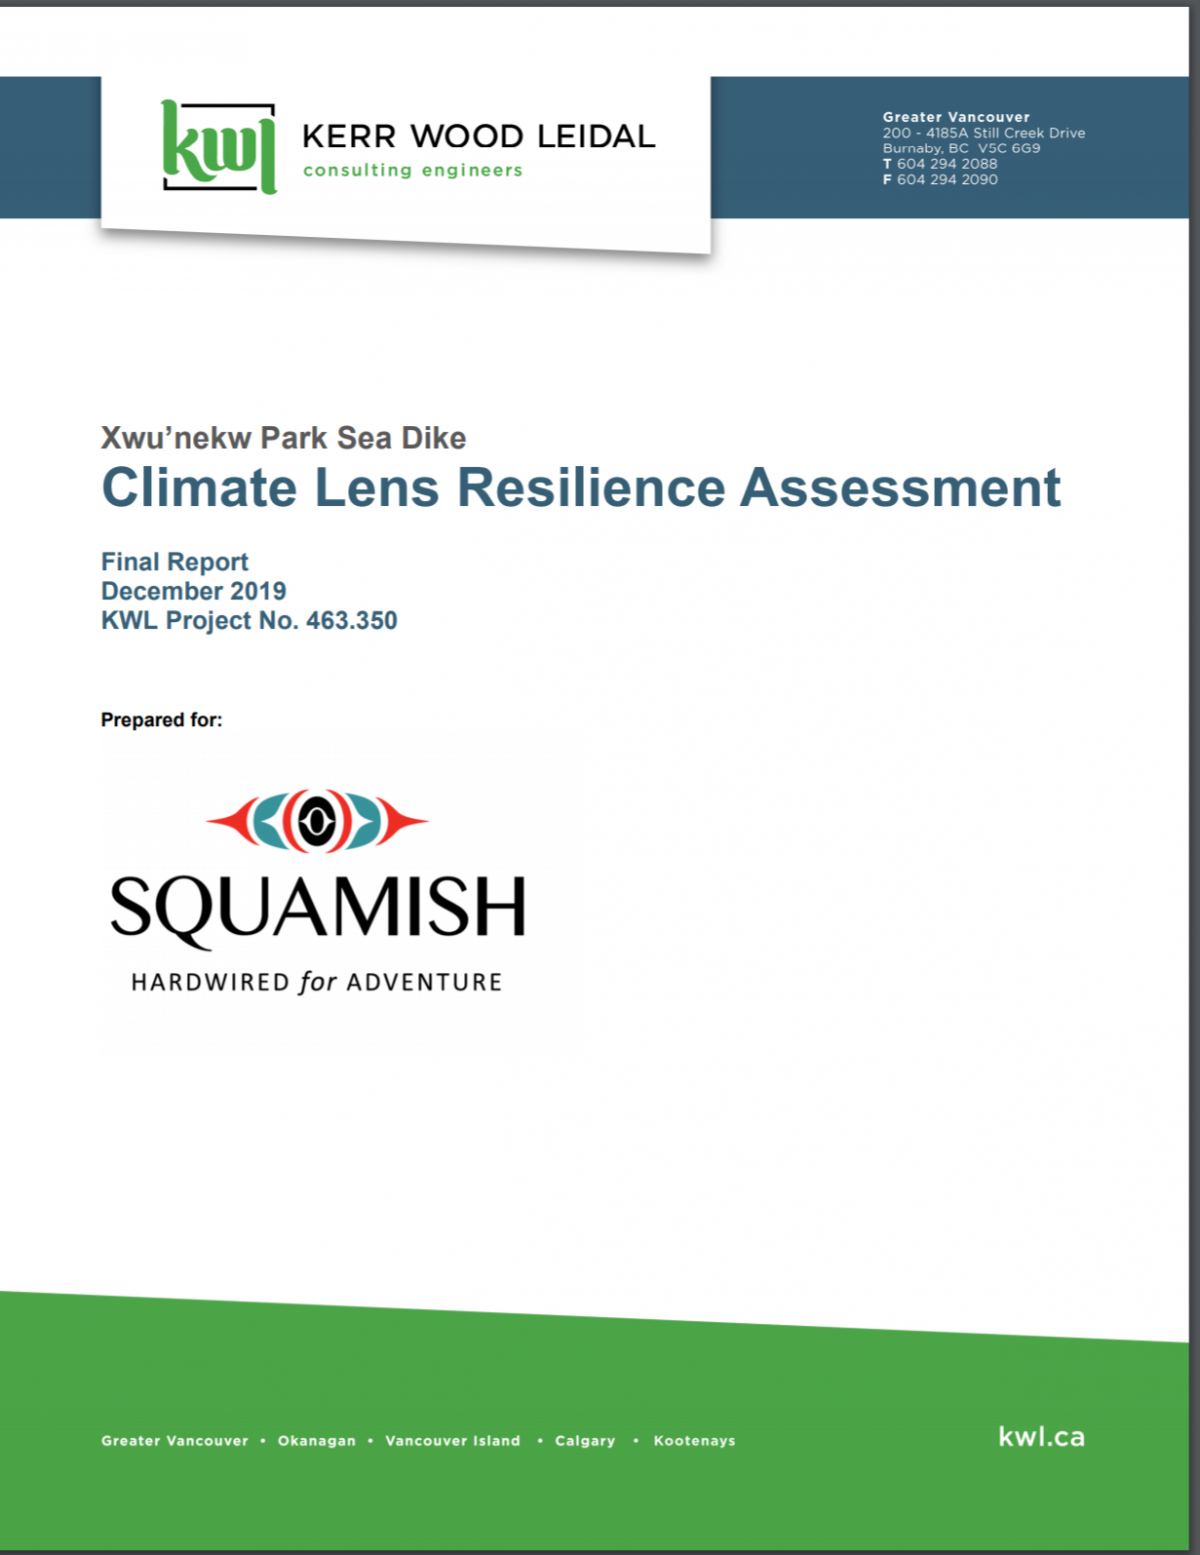 Xwu'nekw Park Sea Dike Climate Lens Resilience Assessment